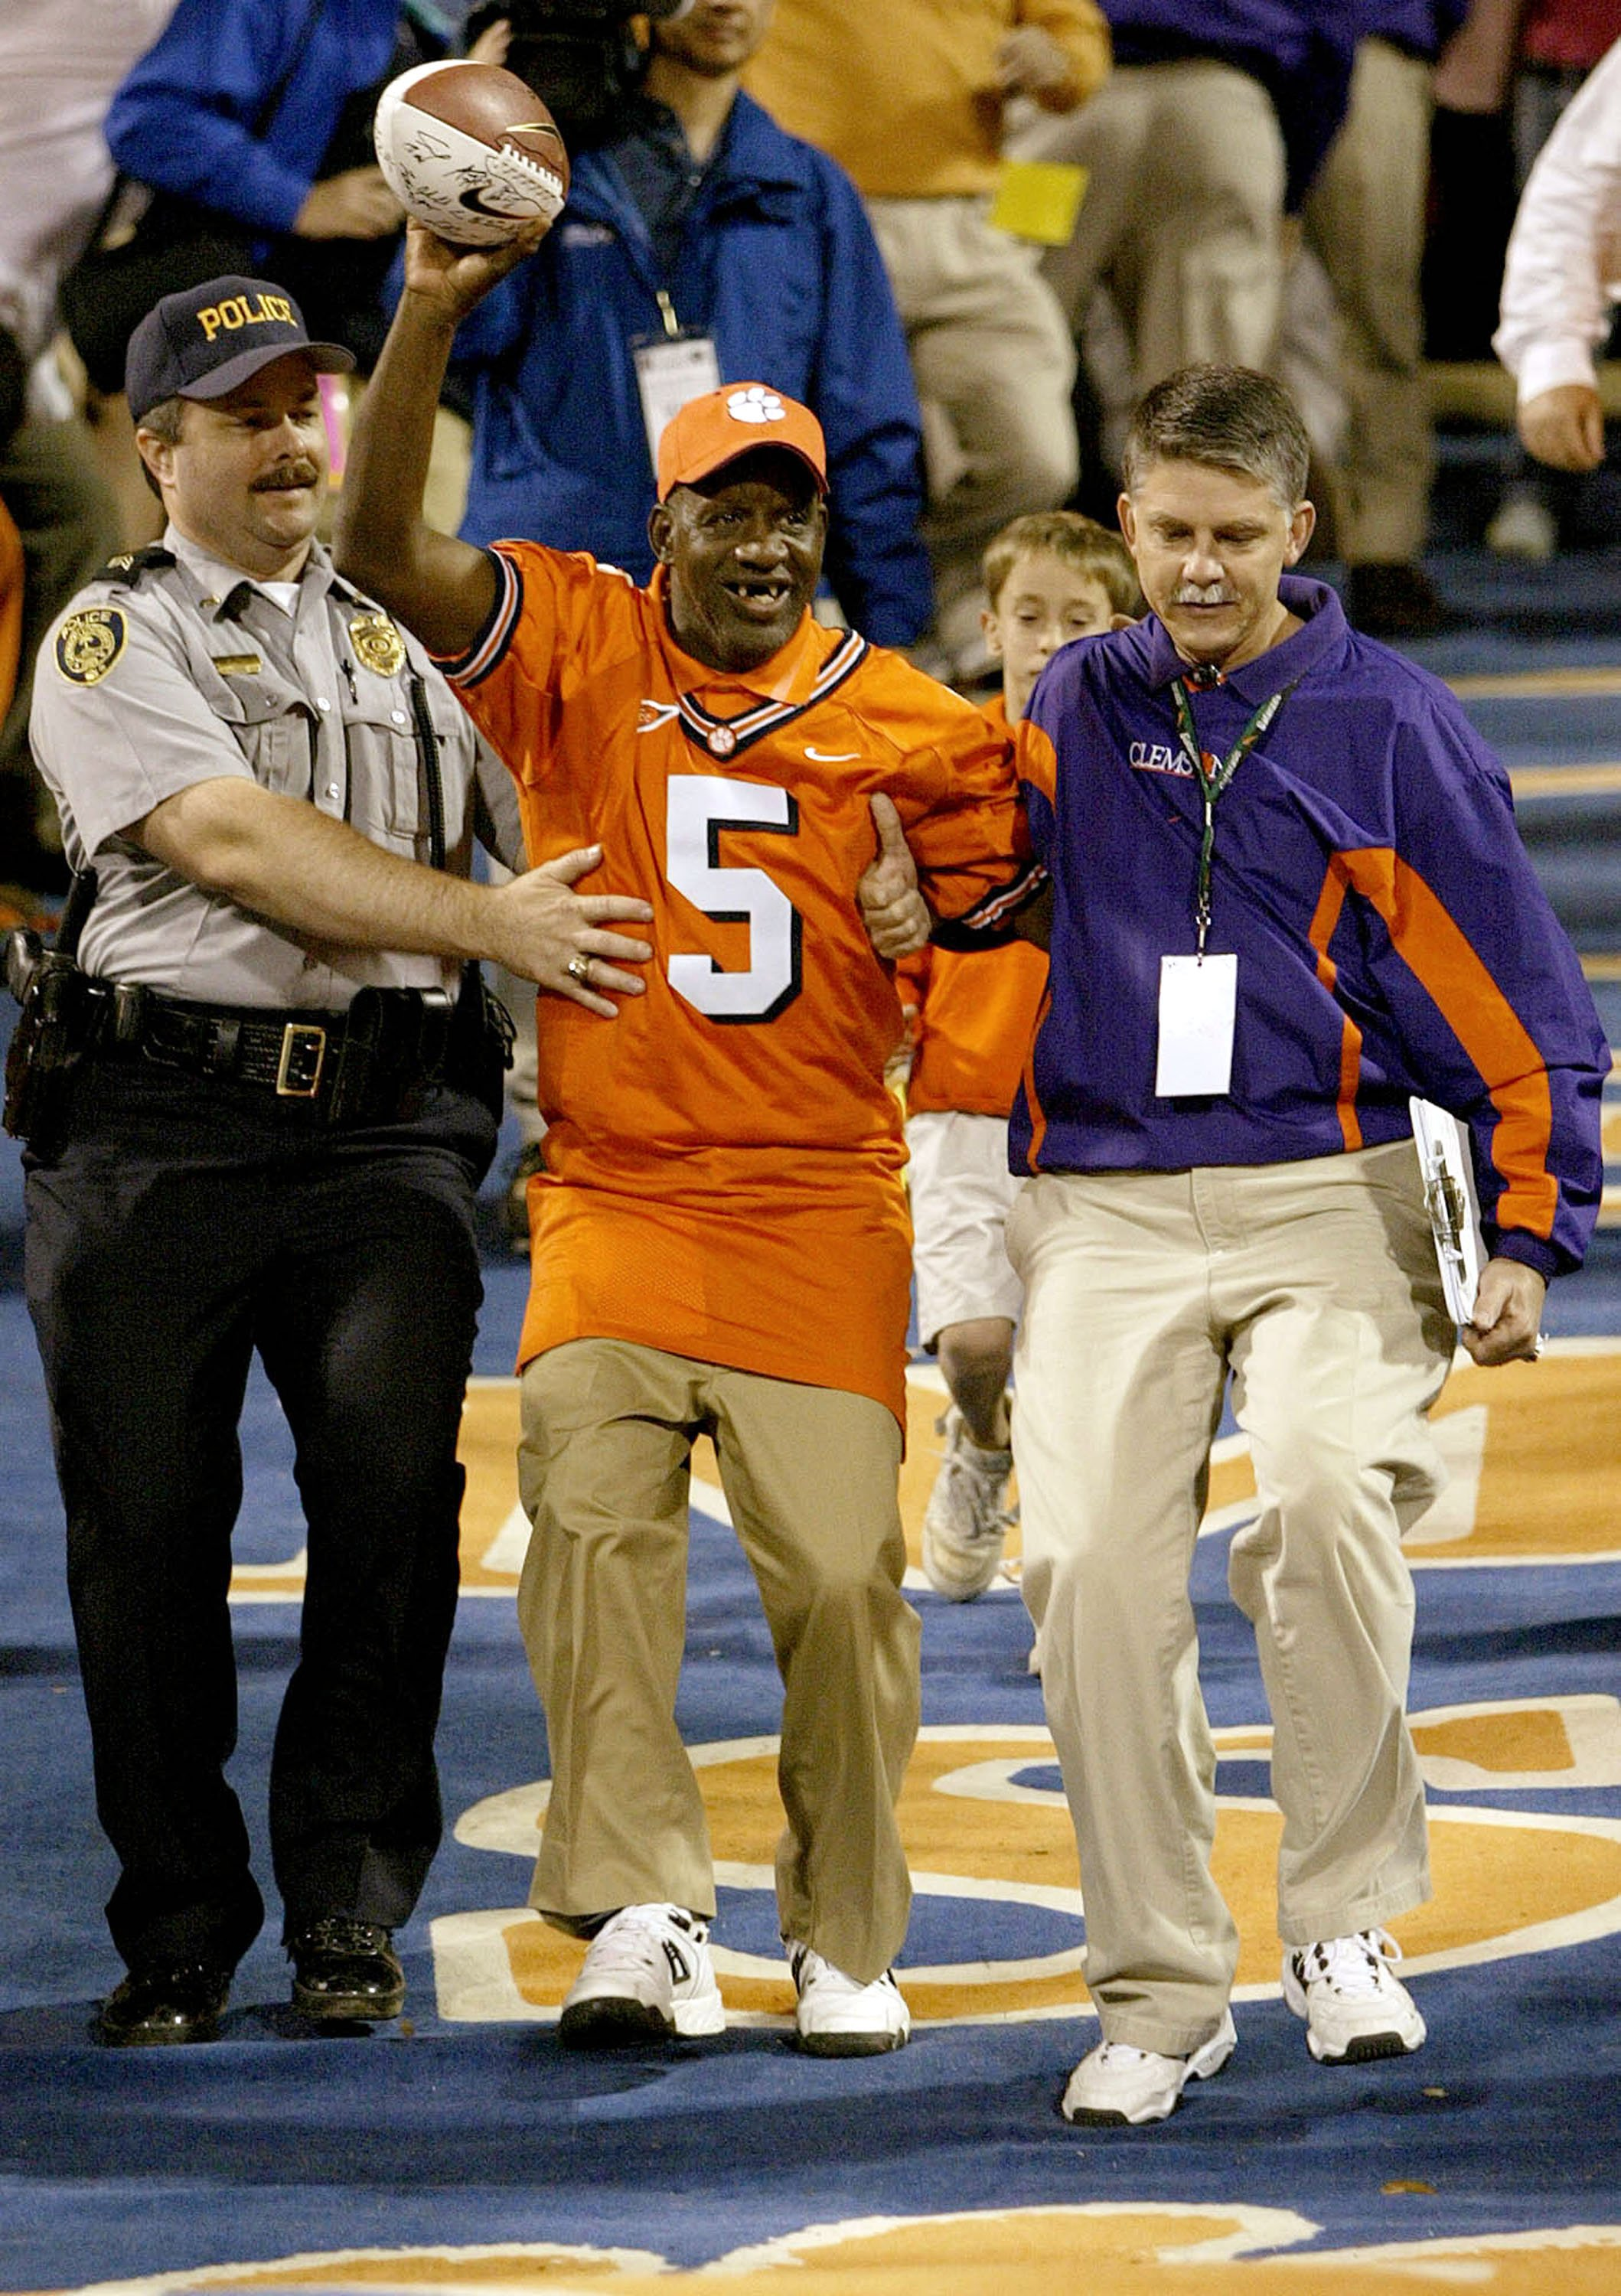 """James Robert """"Radio"""" Kennedy entering the stadium before the start of the game between the Florida State Seminoles and the Clemson Tigers at Memorial Stadium in Clemson, South Carolina 